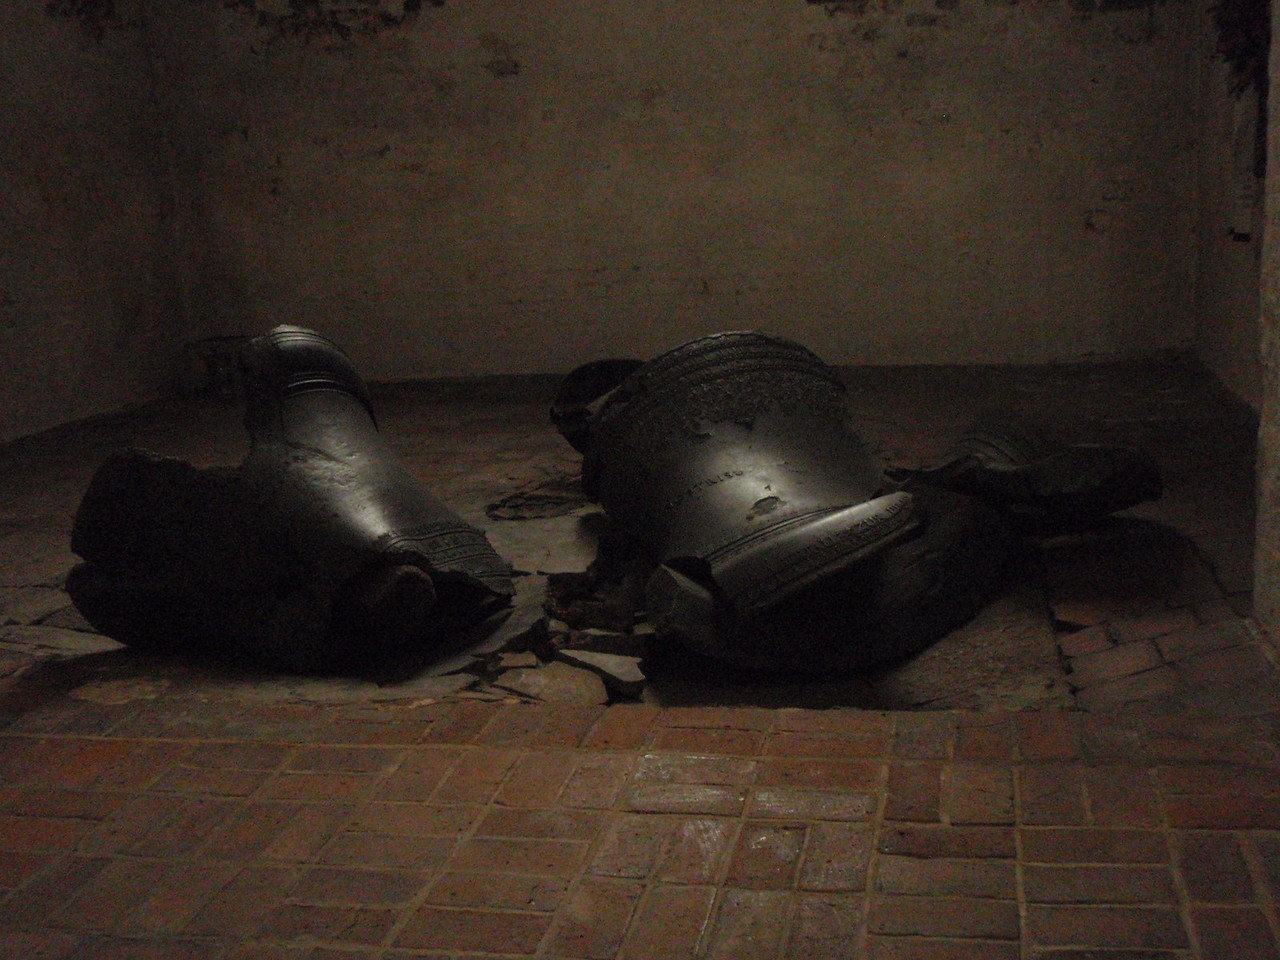 Bell's fallen to the floor in one of Lubeck's cathedrals.  The bells, which fell during World War II bombings, were left as a reminder of the horrors of war.